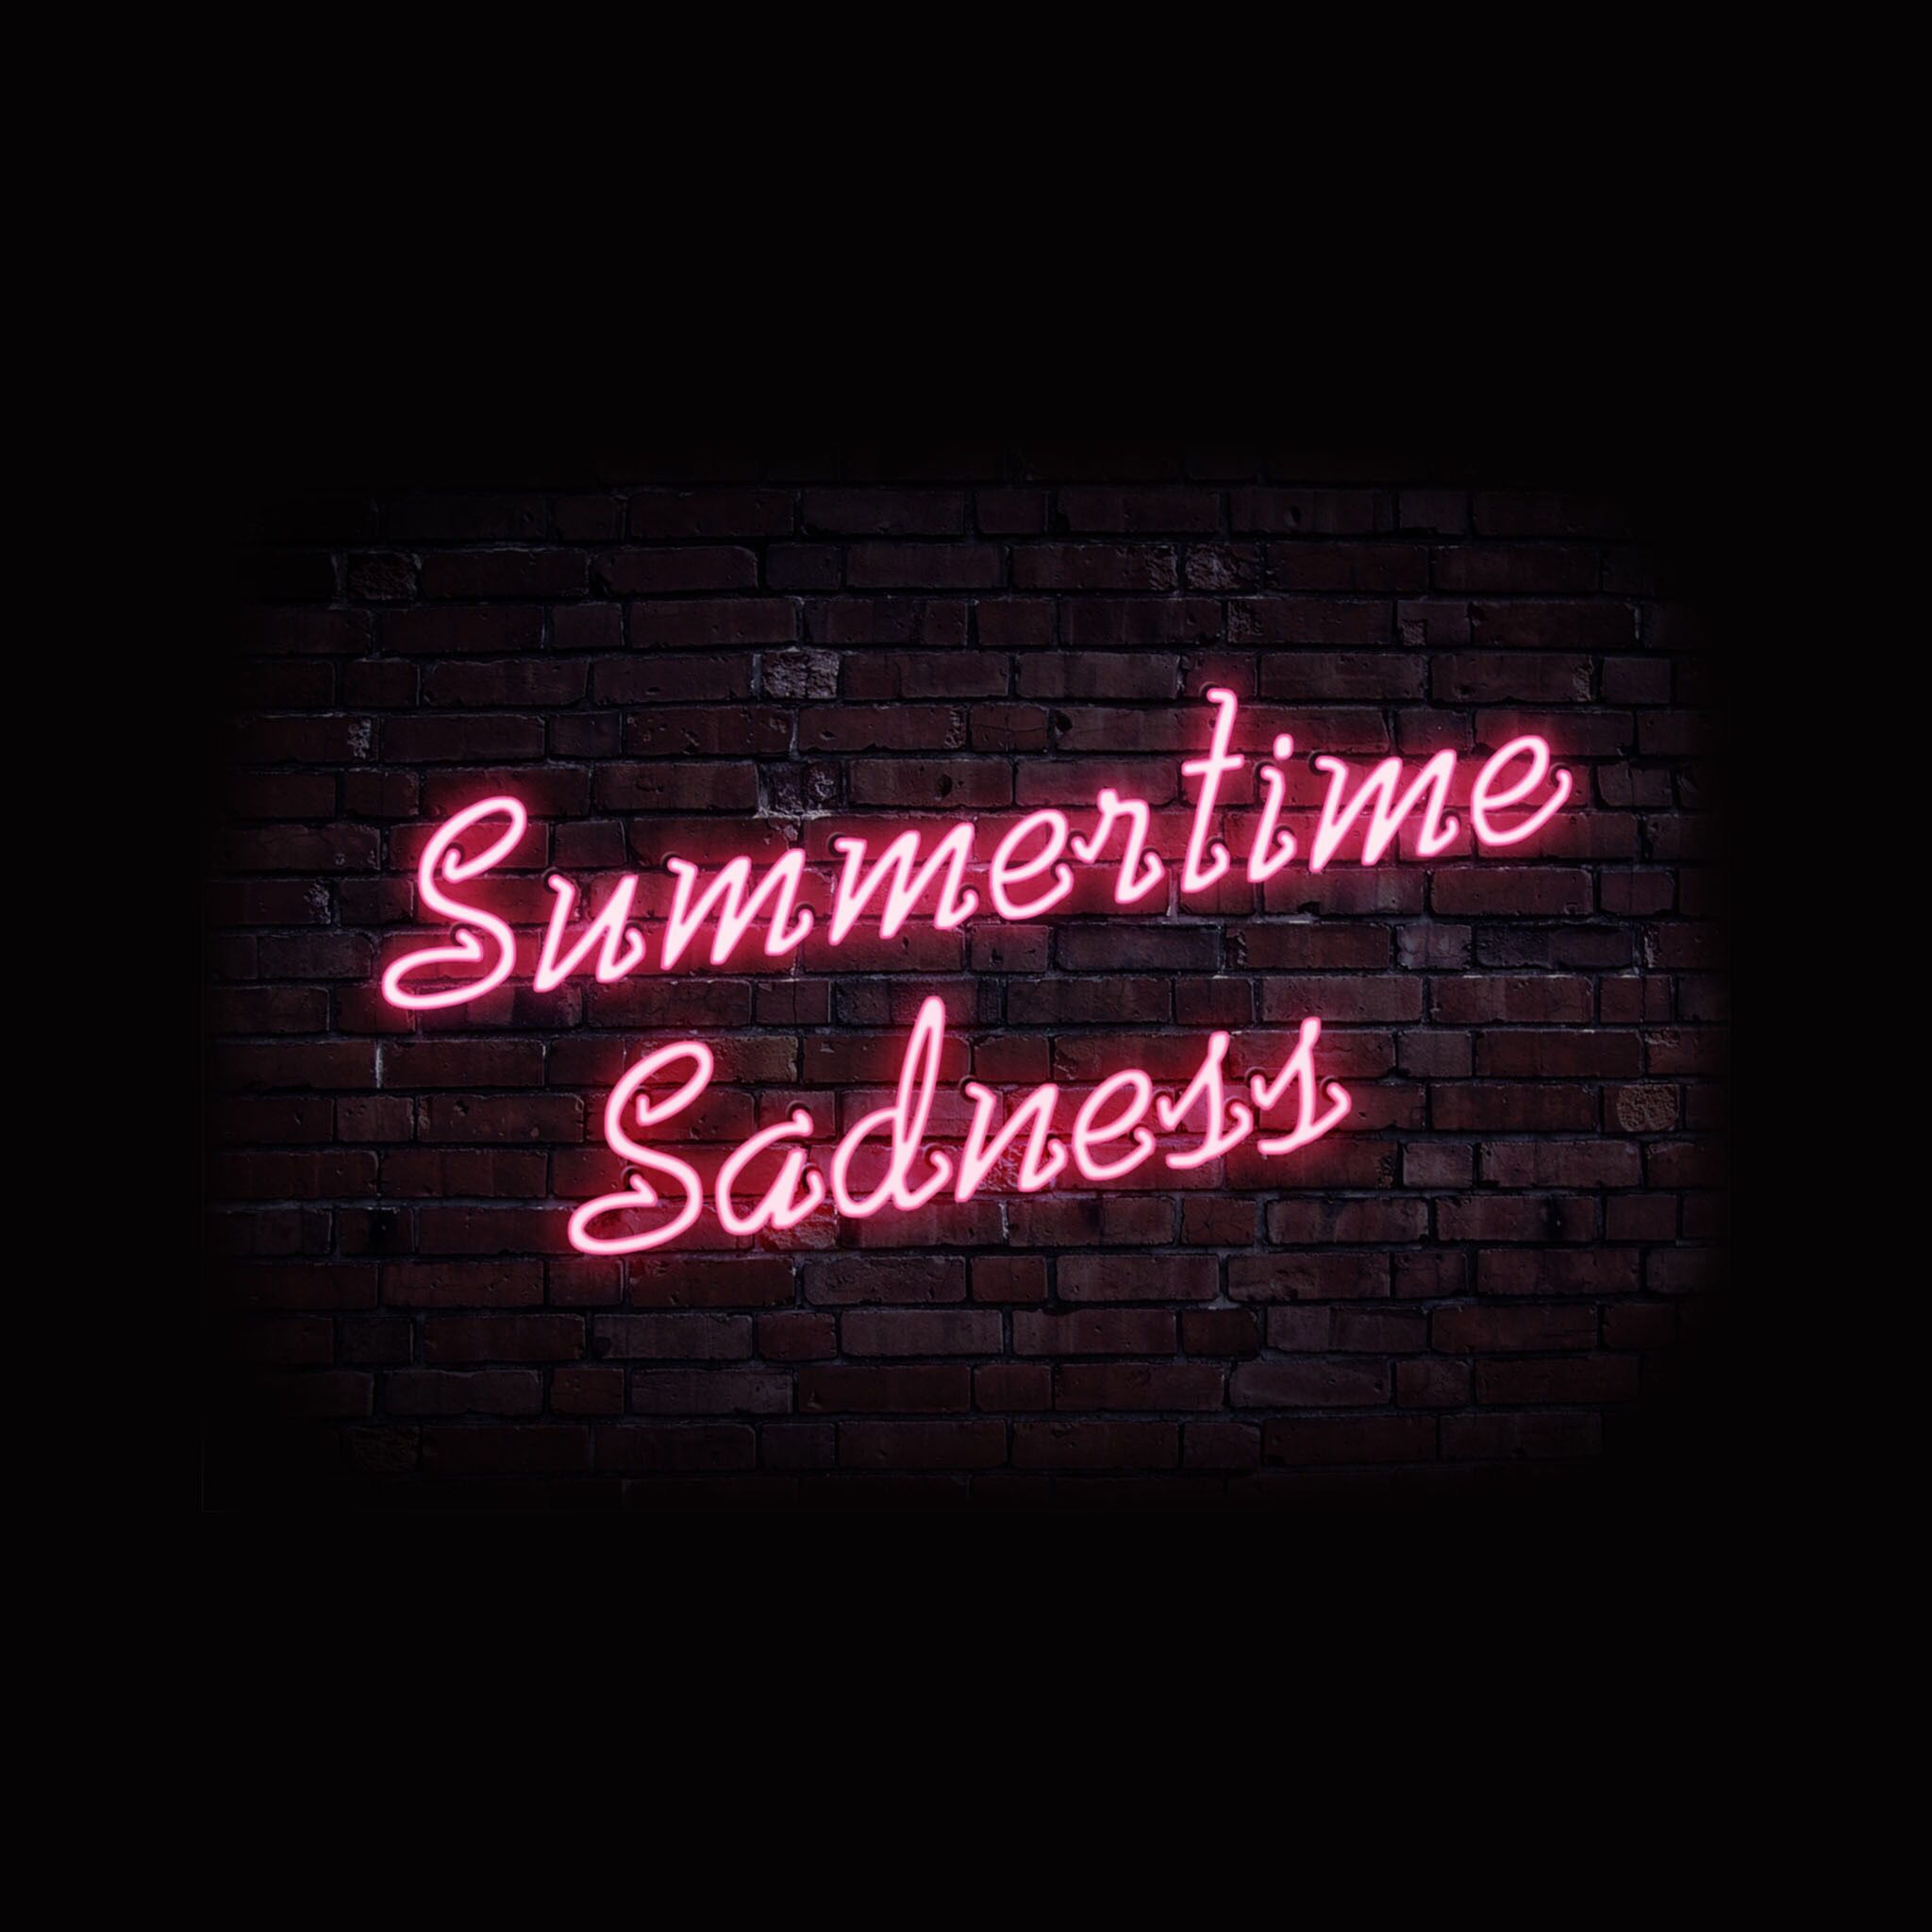 107 1073055 summertime sadness character aesthetic pink aesthetic neon sign